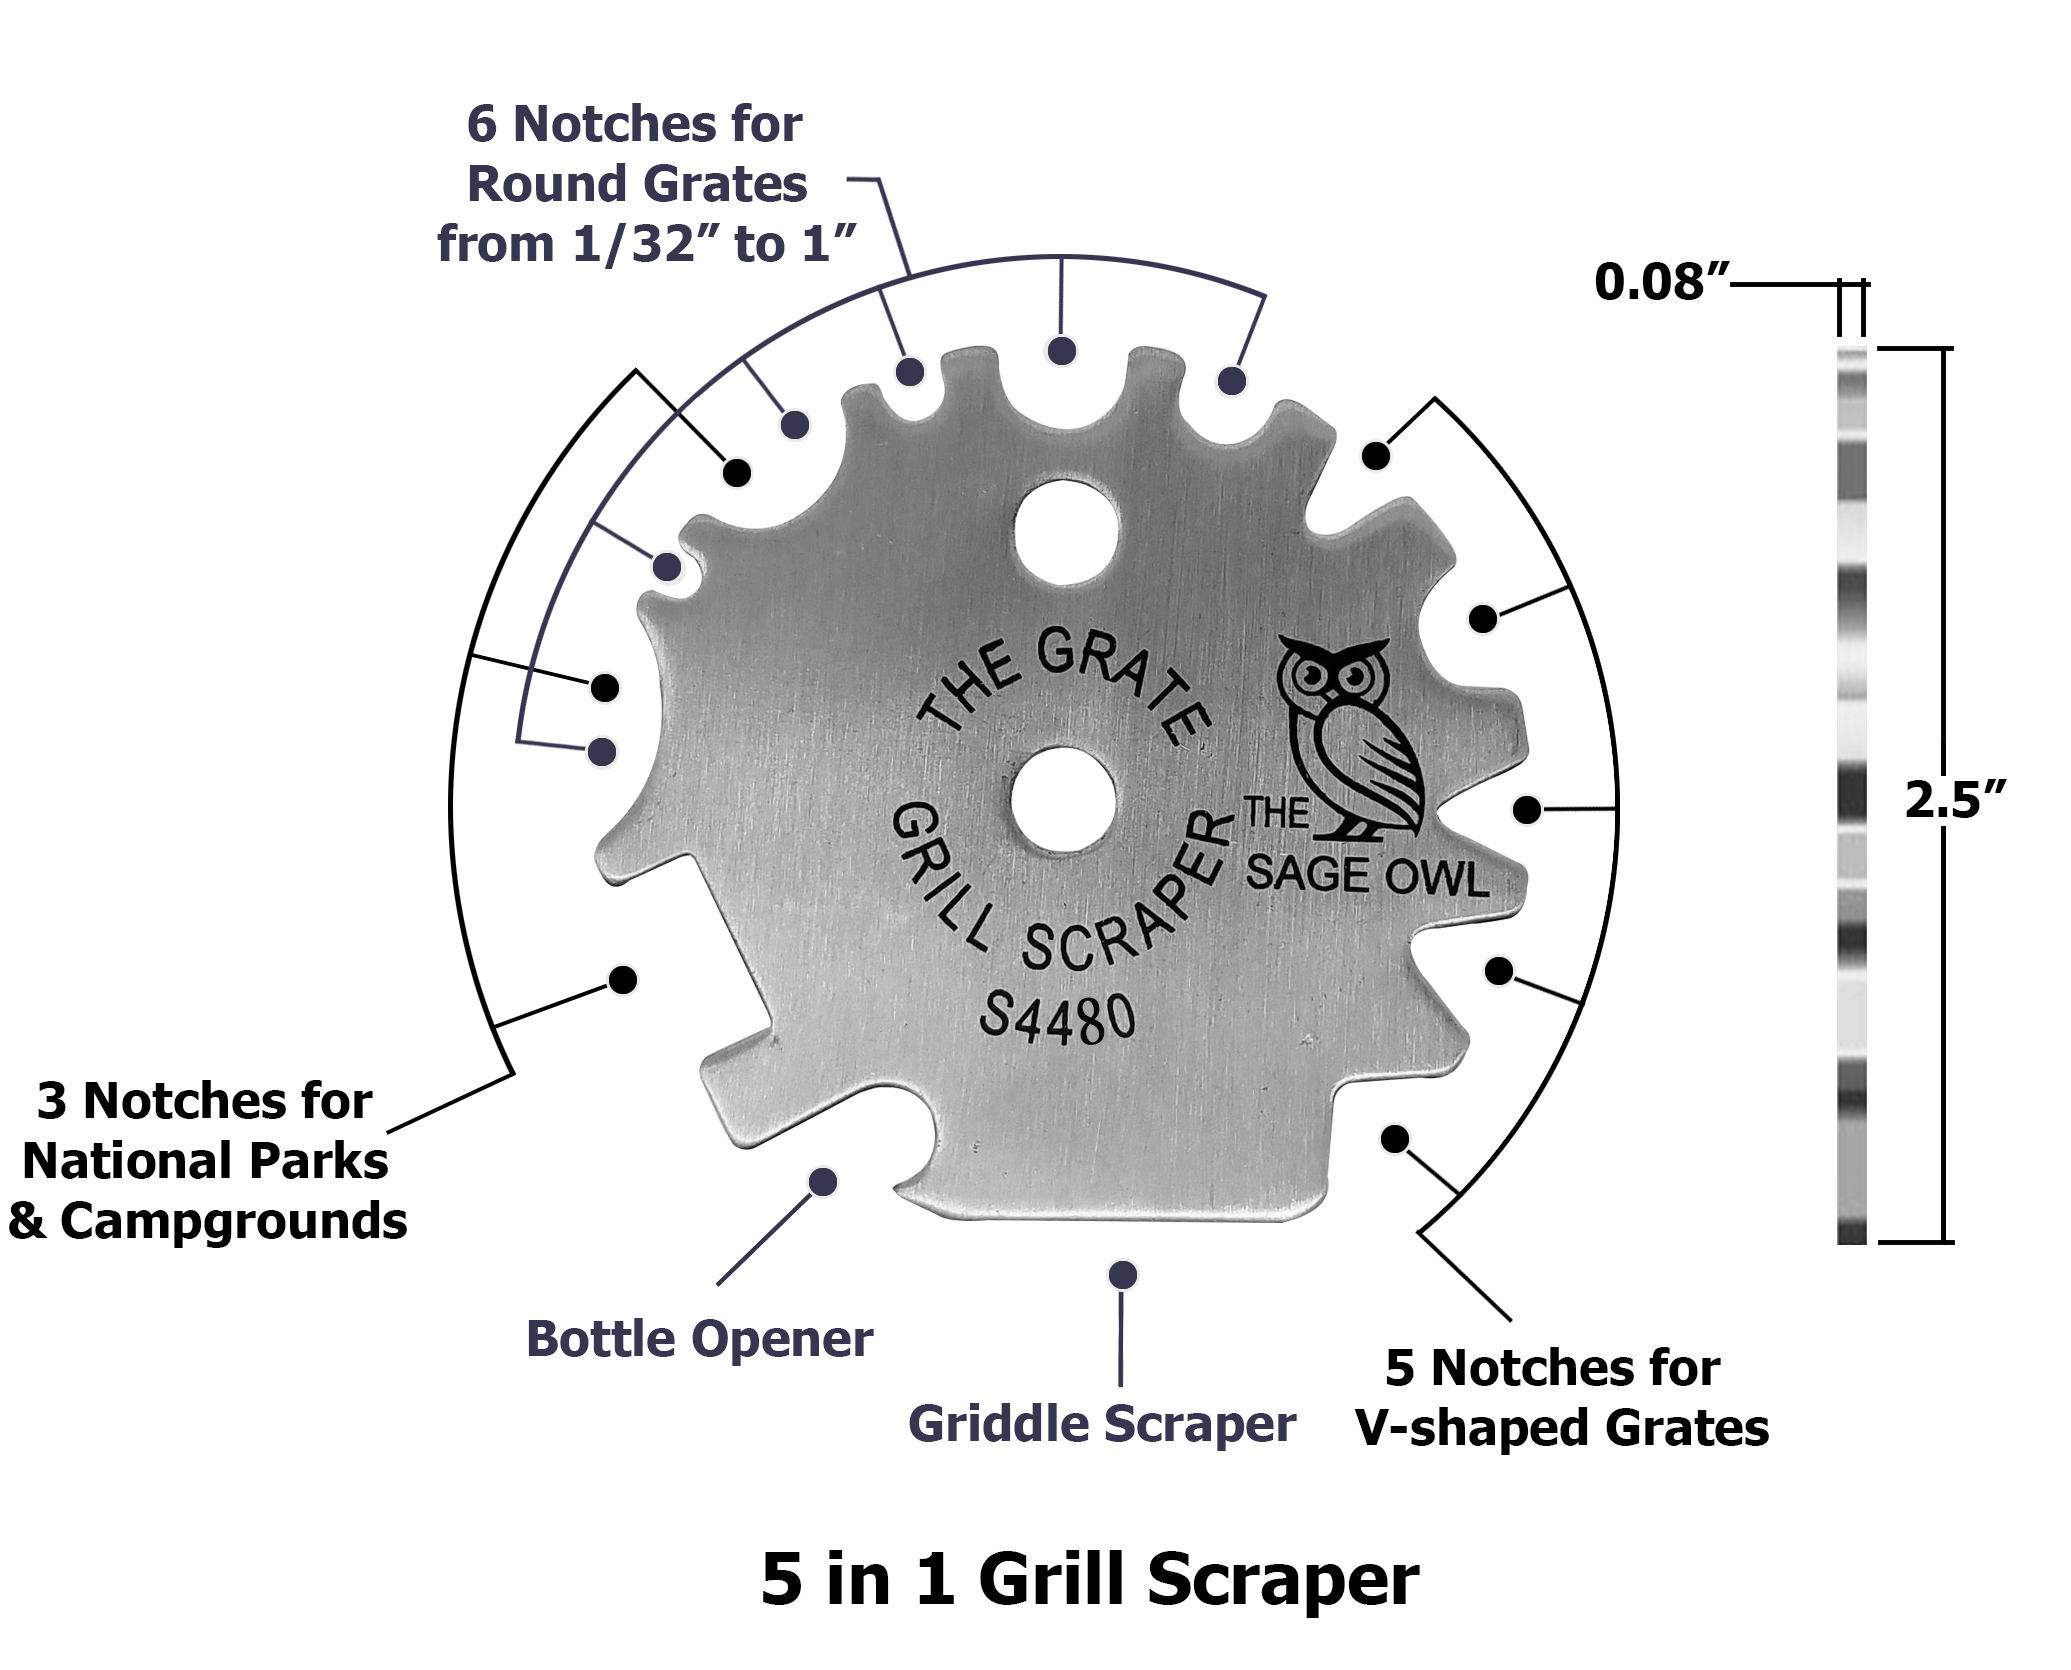 The Grate Grill Scraper - Stainless Steel BBQ Grill Tool - S4480